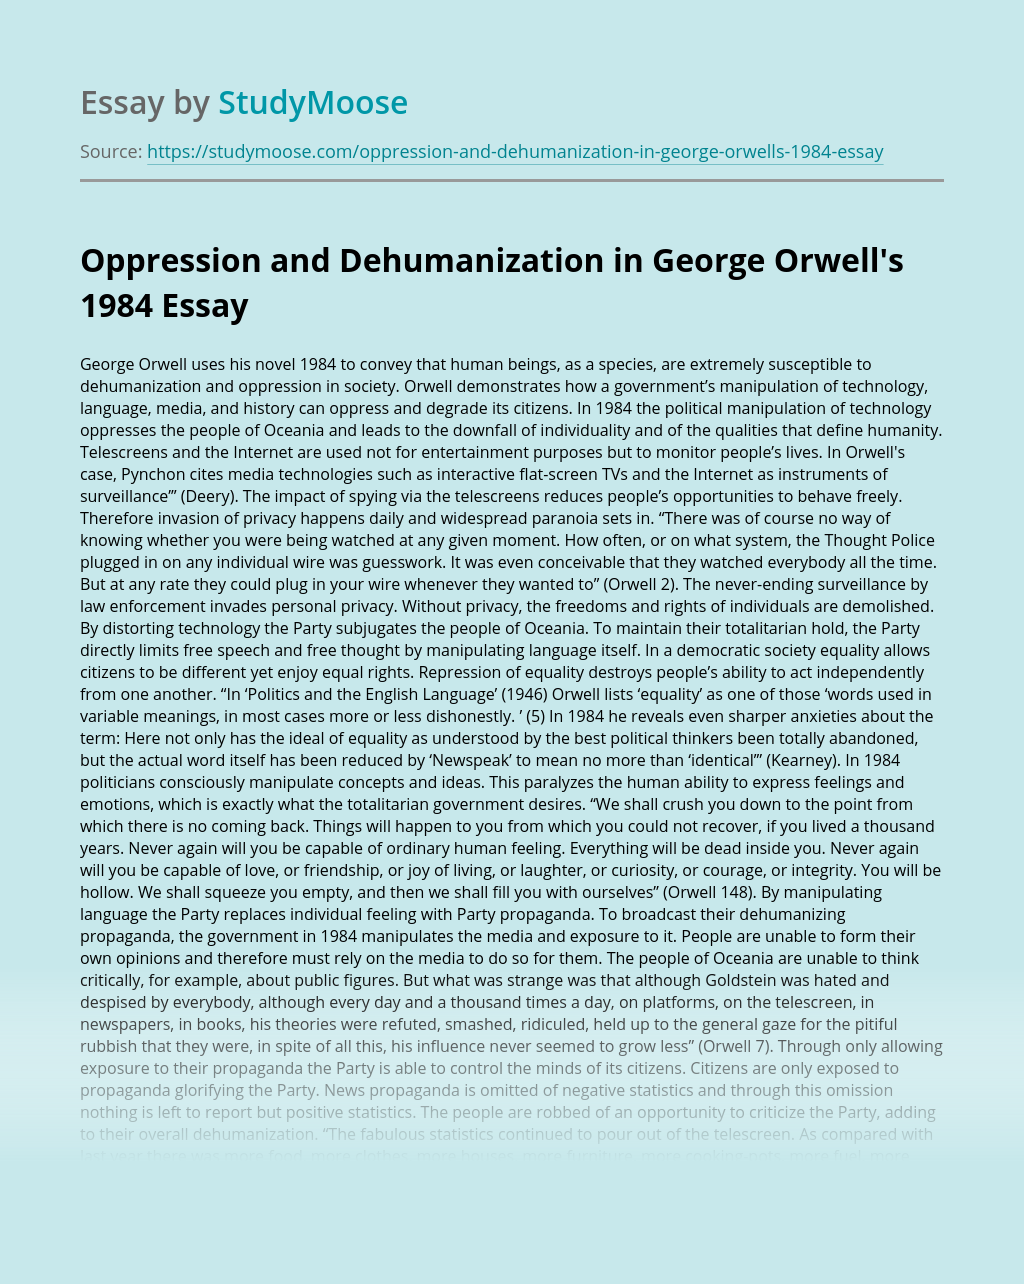 Oppression and Dehumanization in George Orwell's 1984